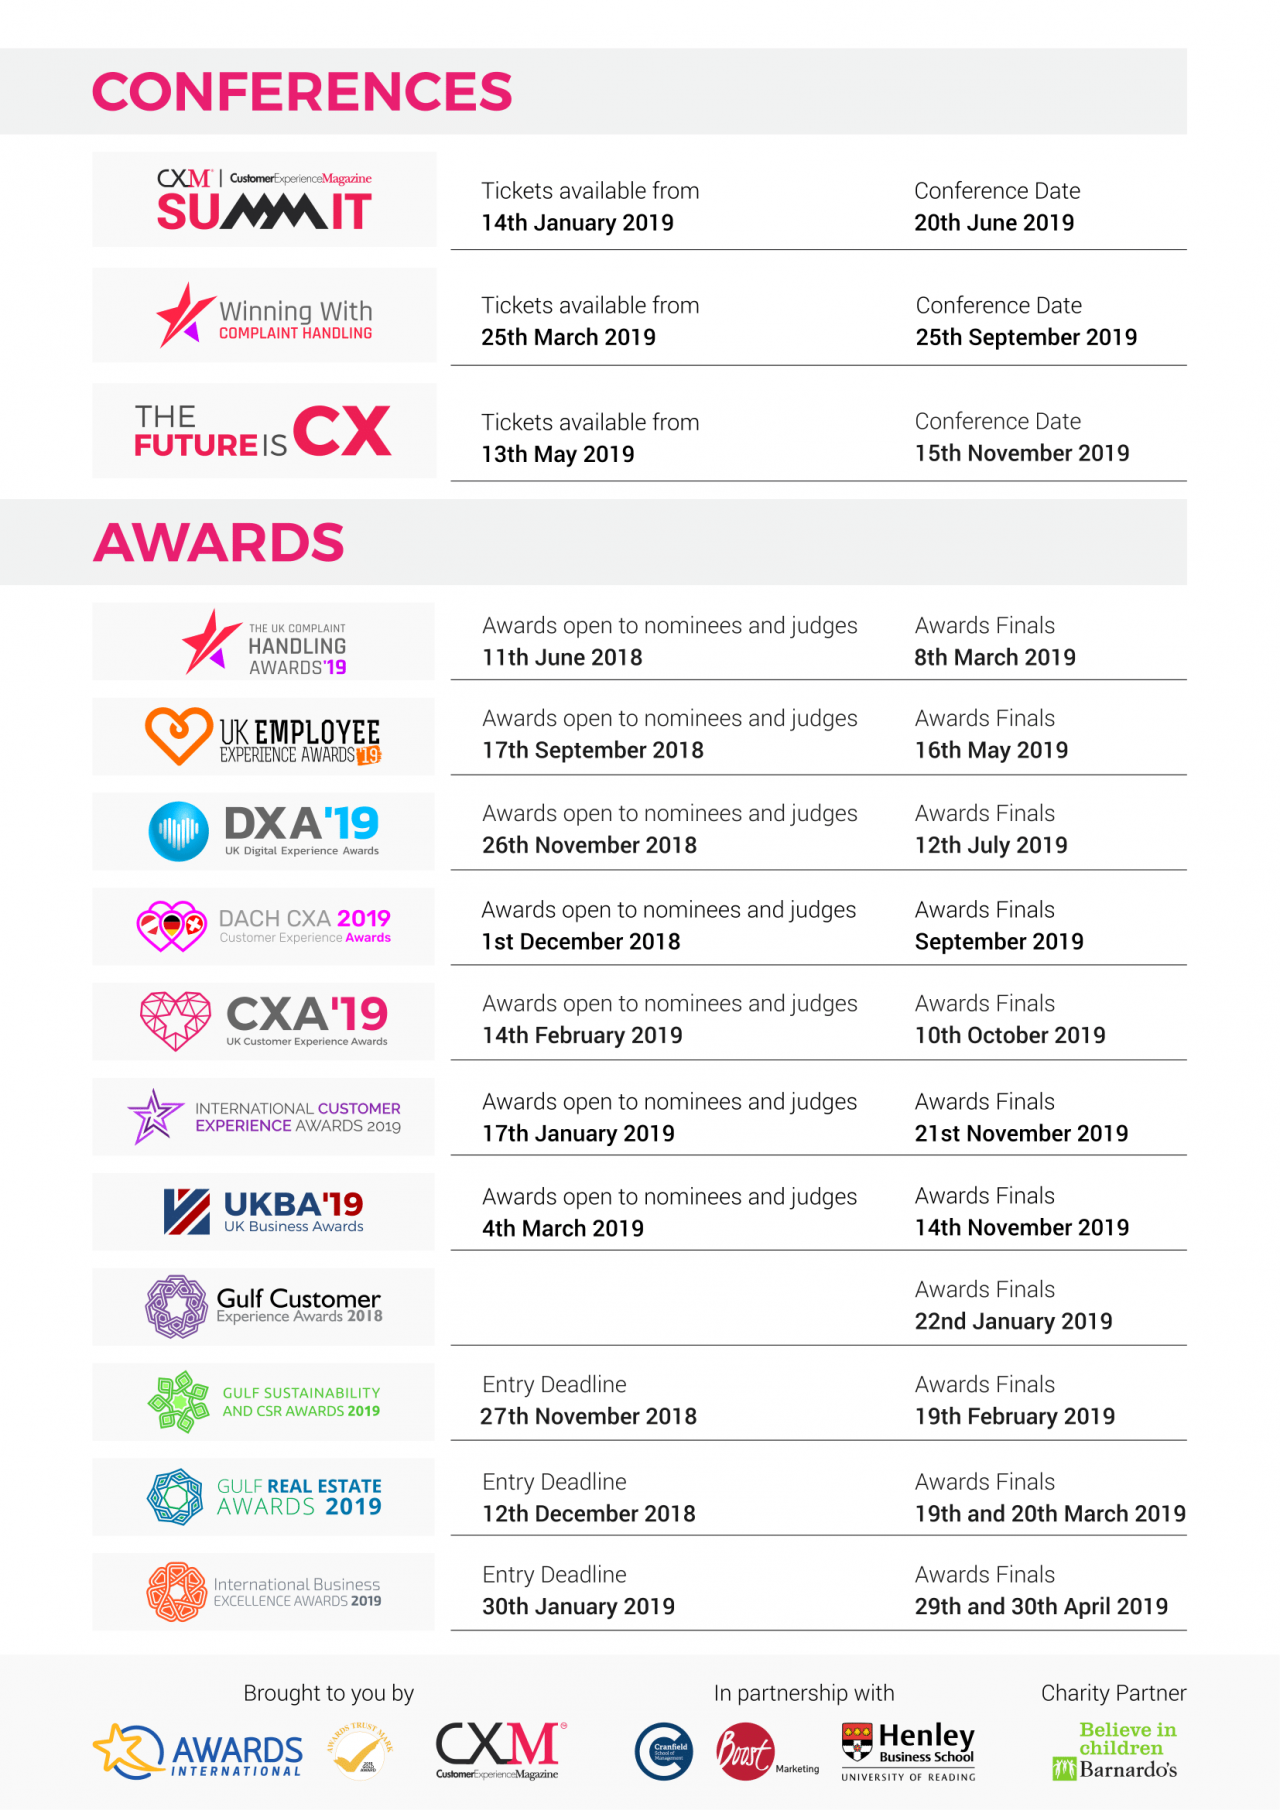 Awards International 2019 calendar